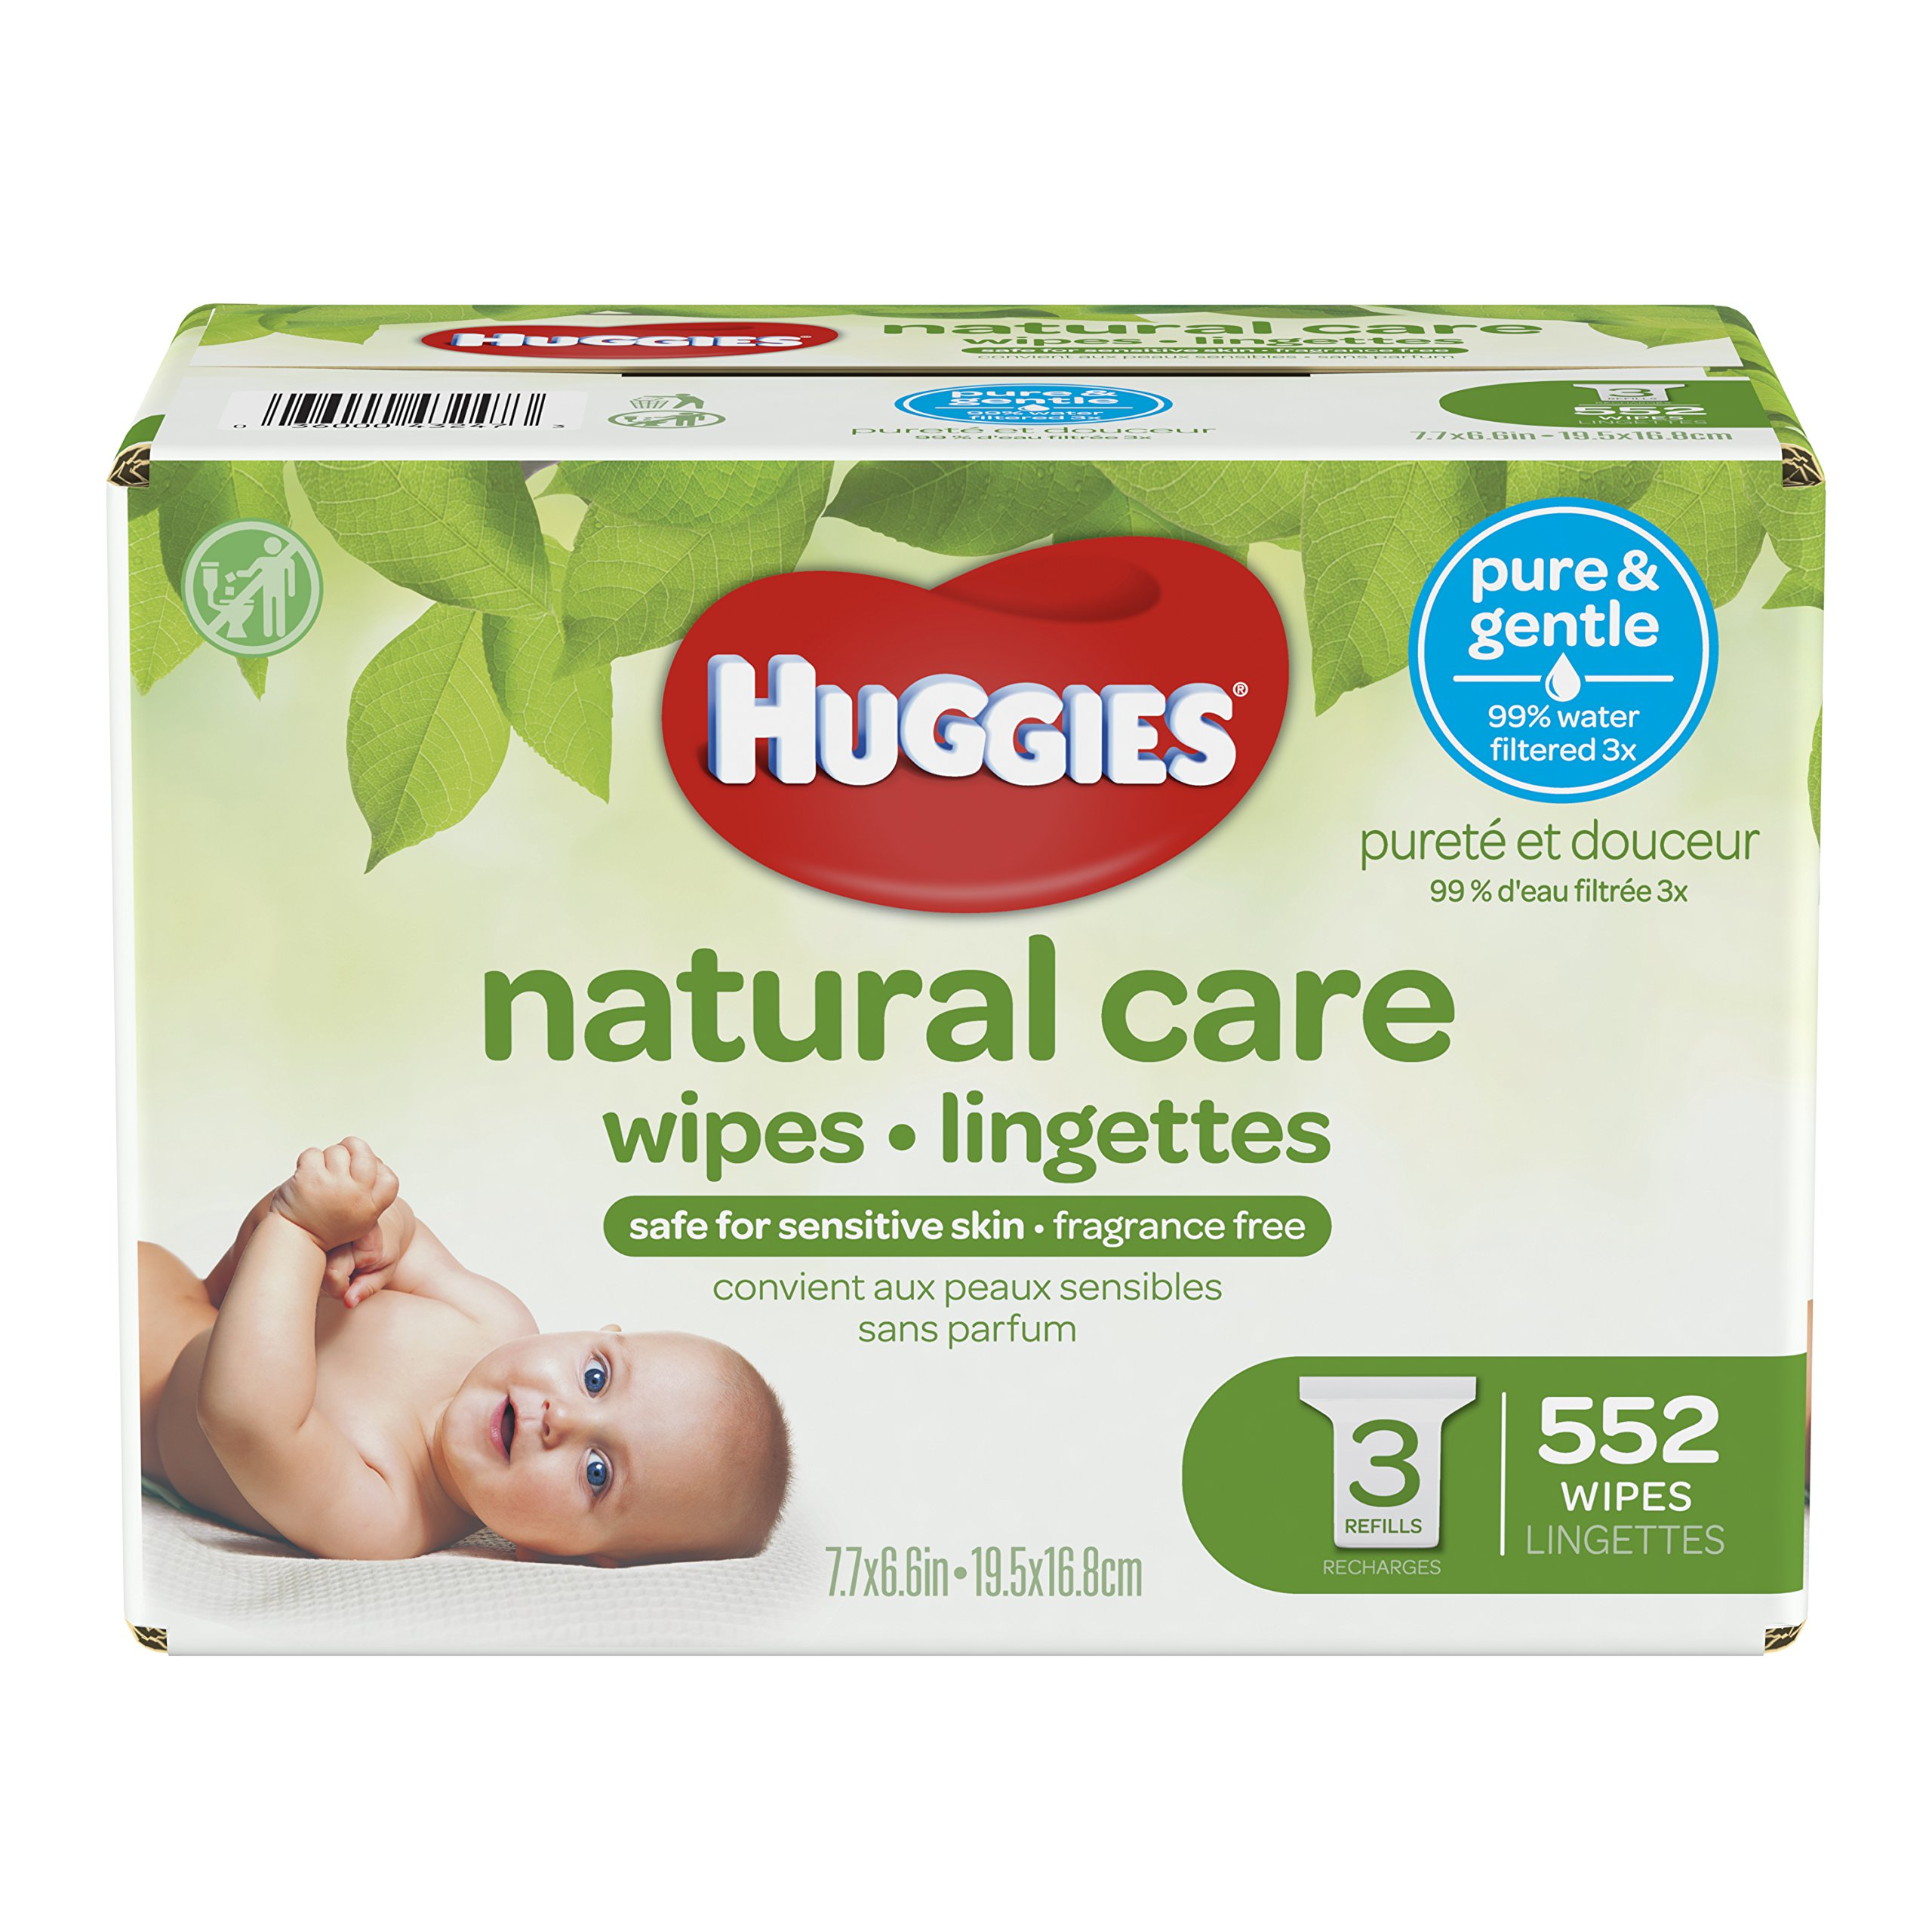 HUGGIES Natural Care Unscented Baby Wipes, Sensitive, Hypoallergenic, Water-Based, 3 Refill Packs, 552 Count Total by HUGGIES